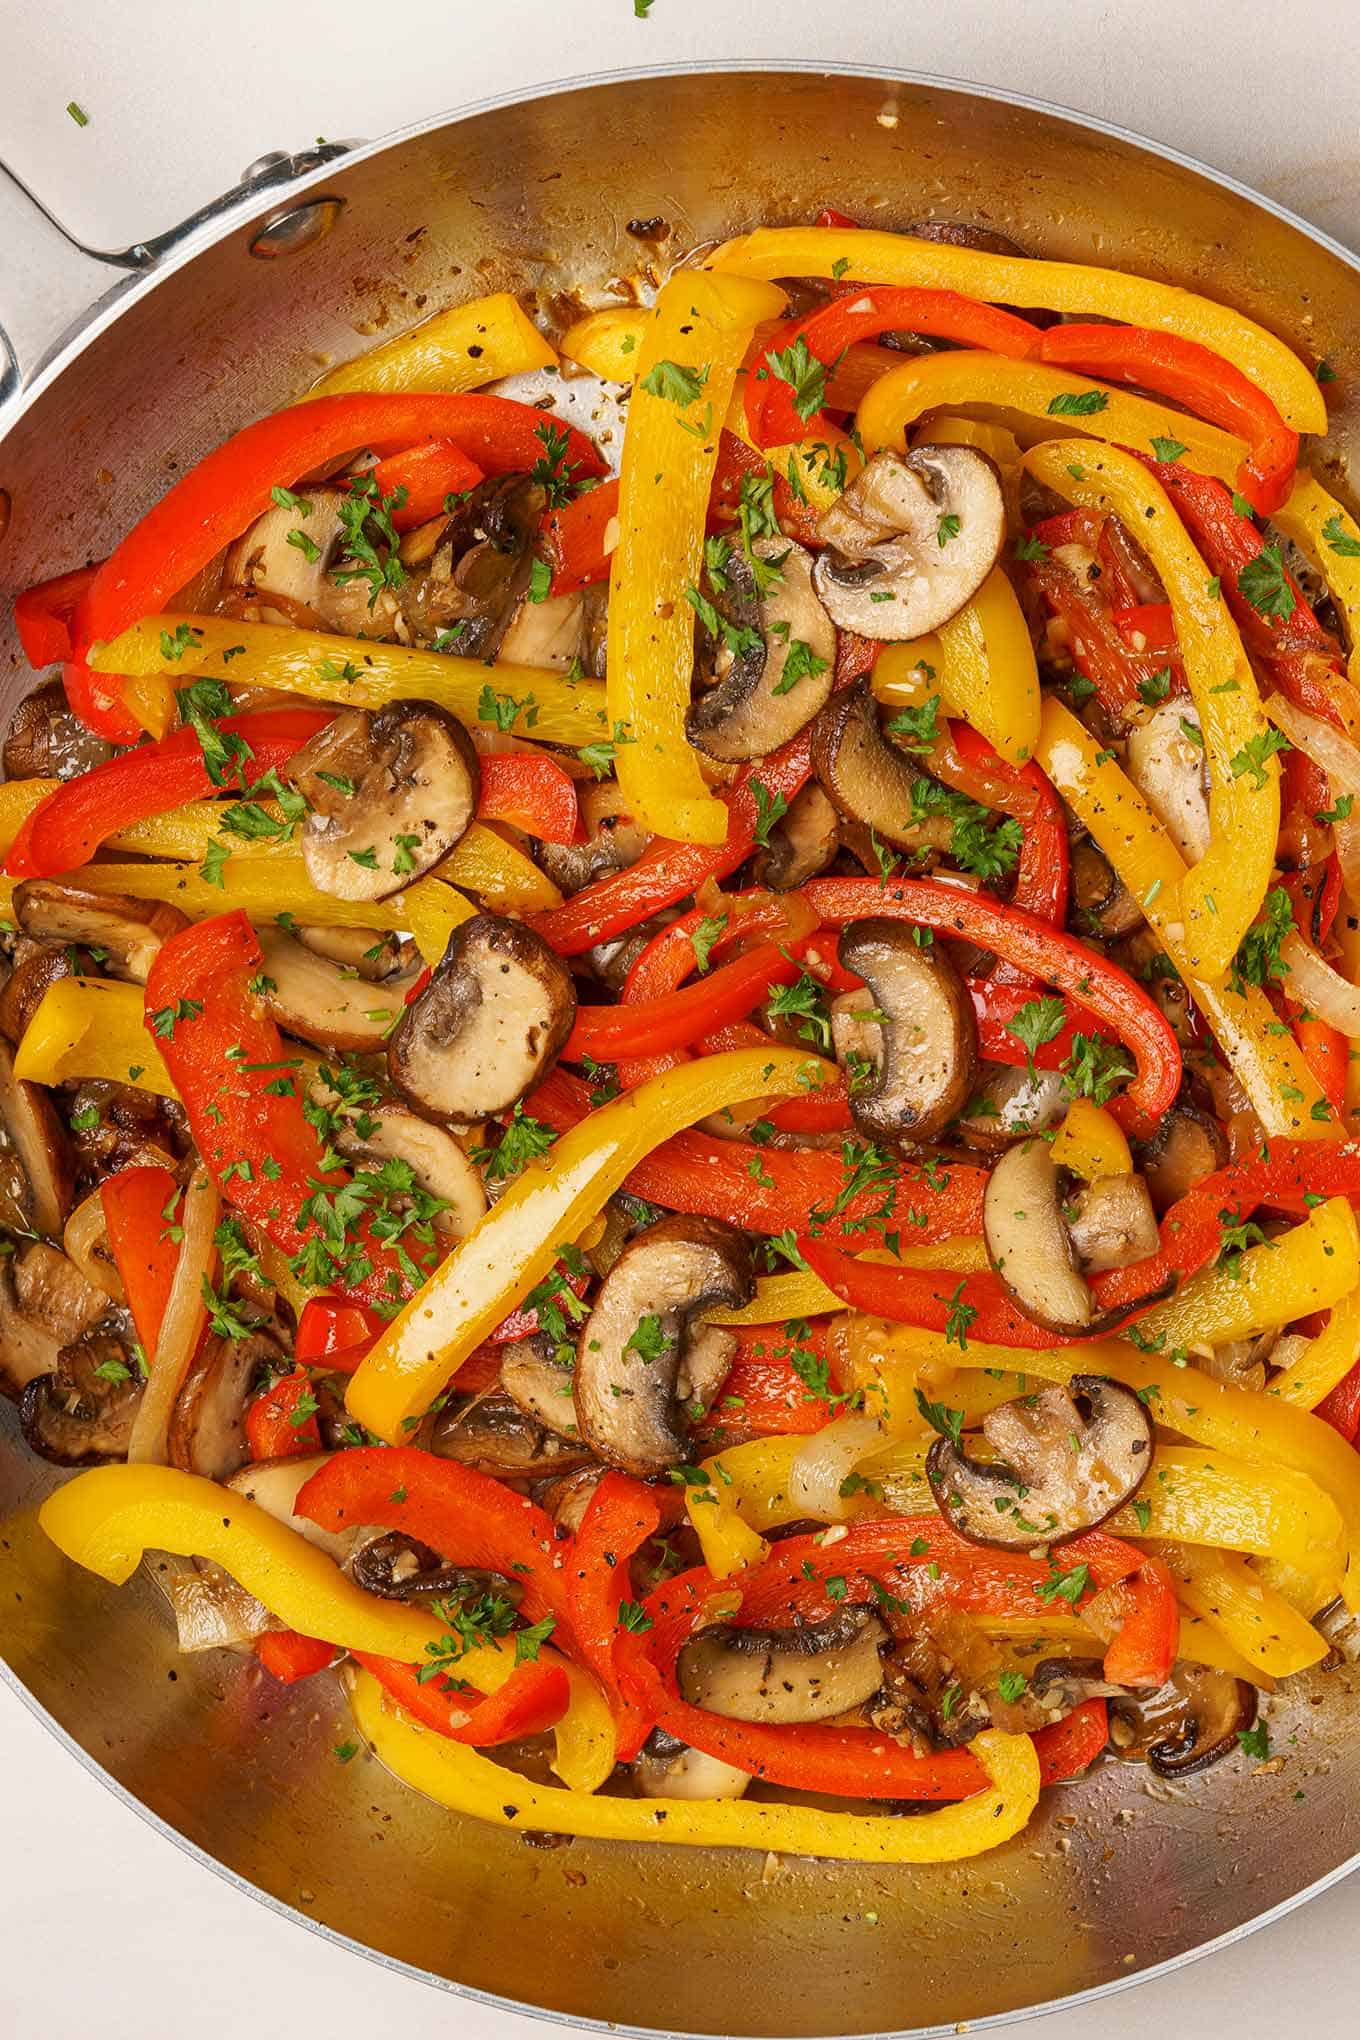 Sautéed bell peppers, mushrooms, and onions in a frying pan.